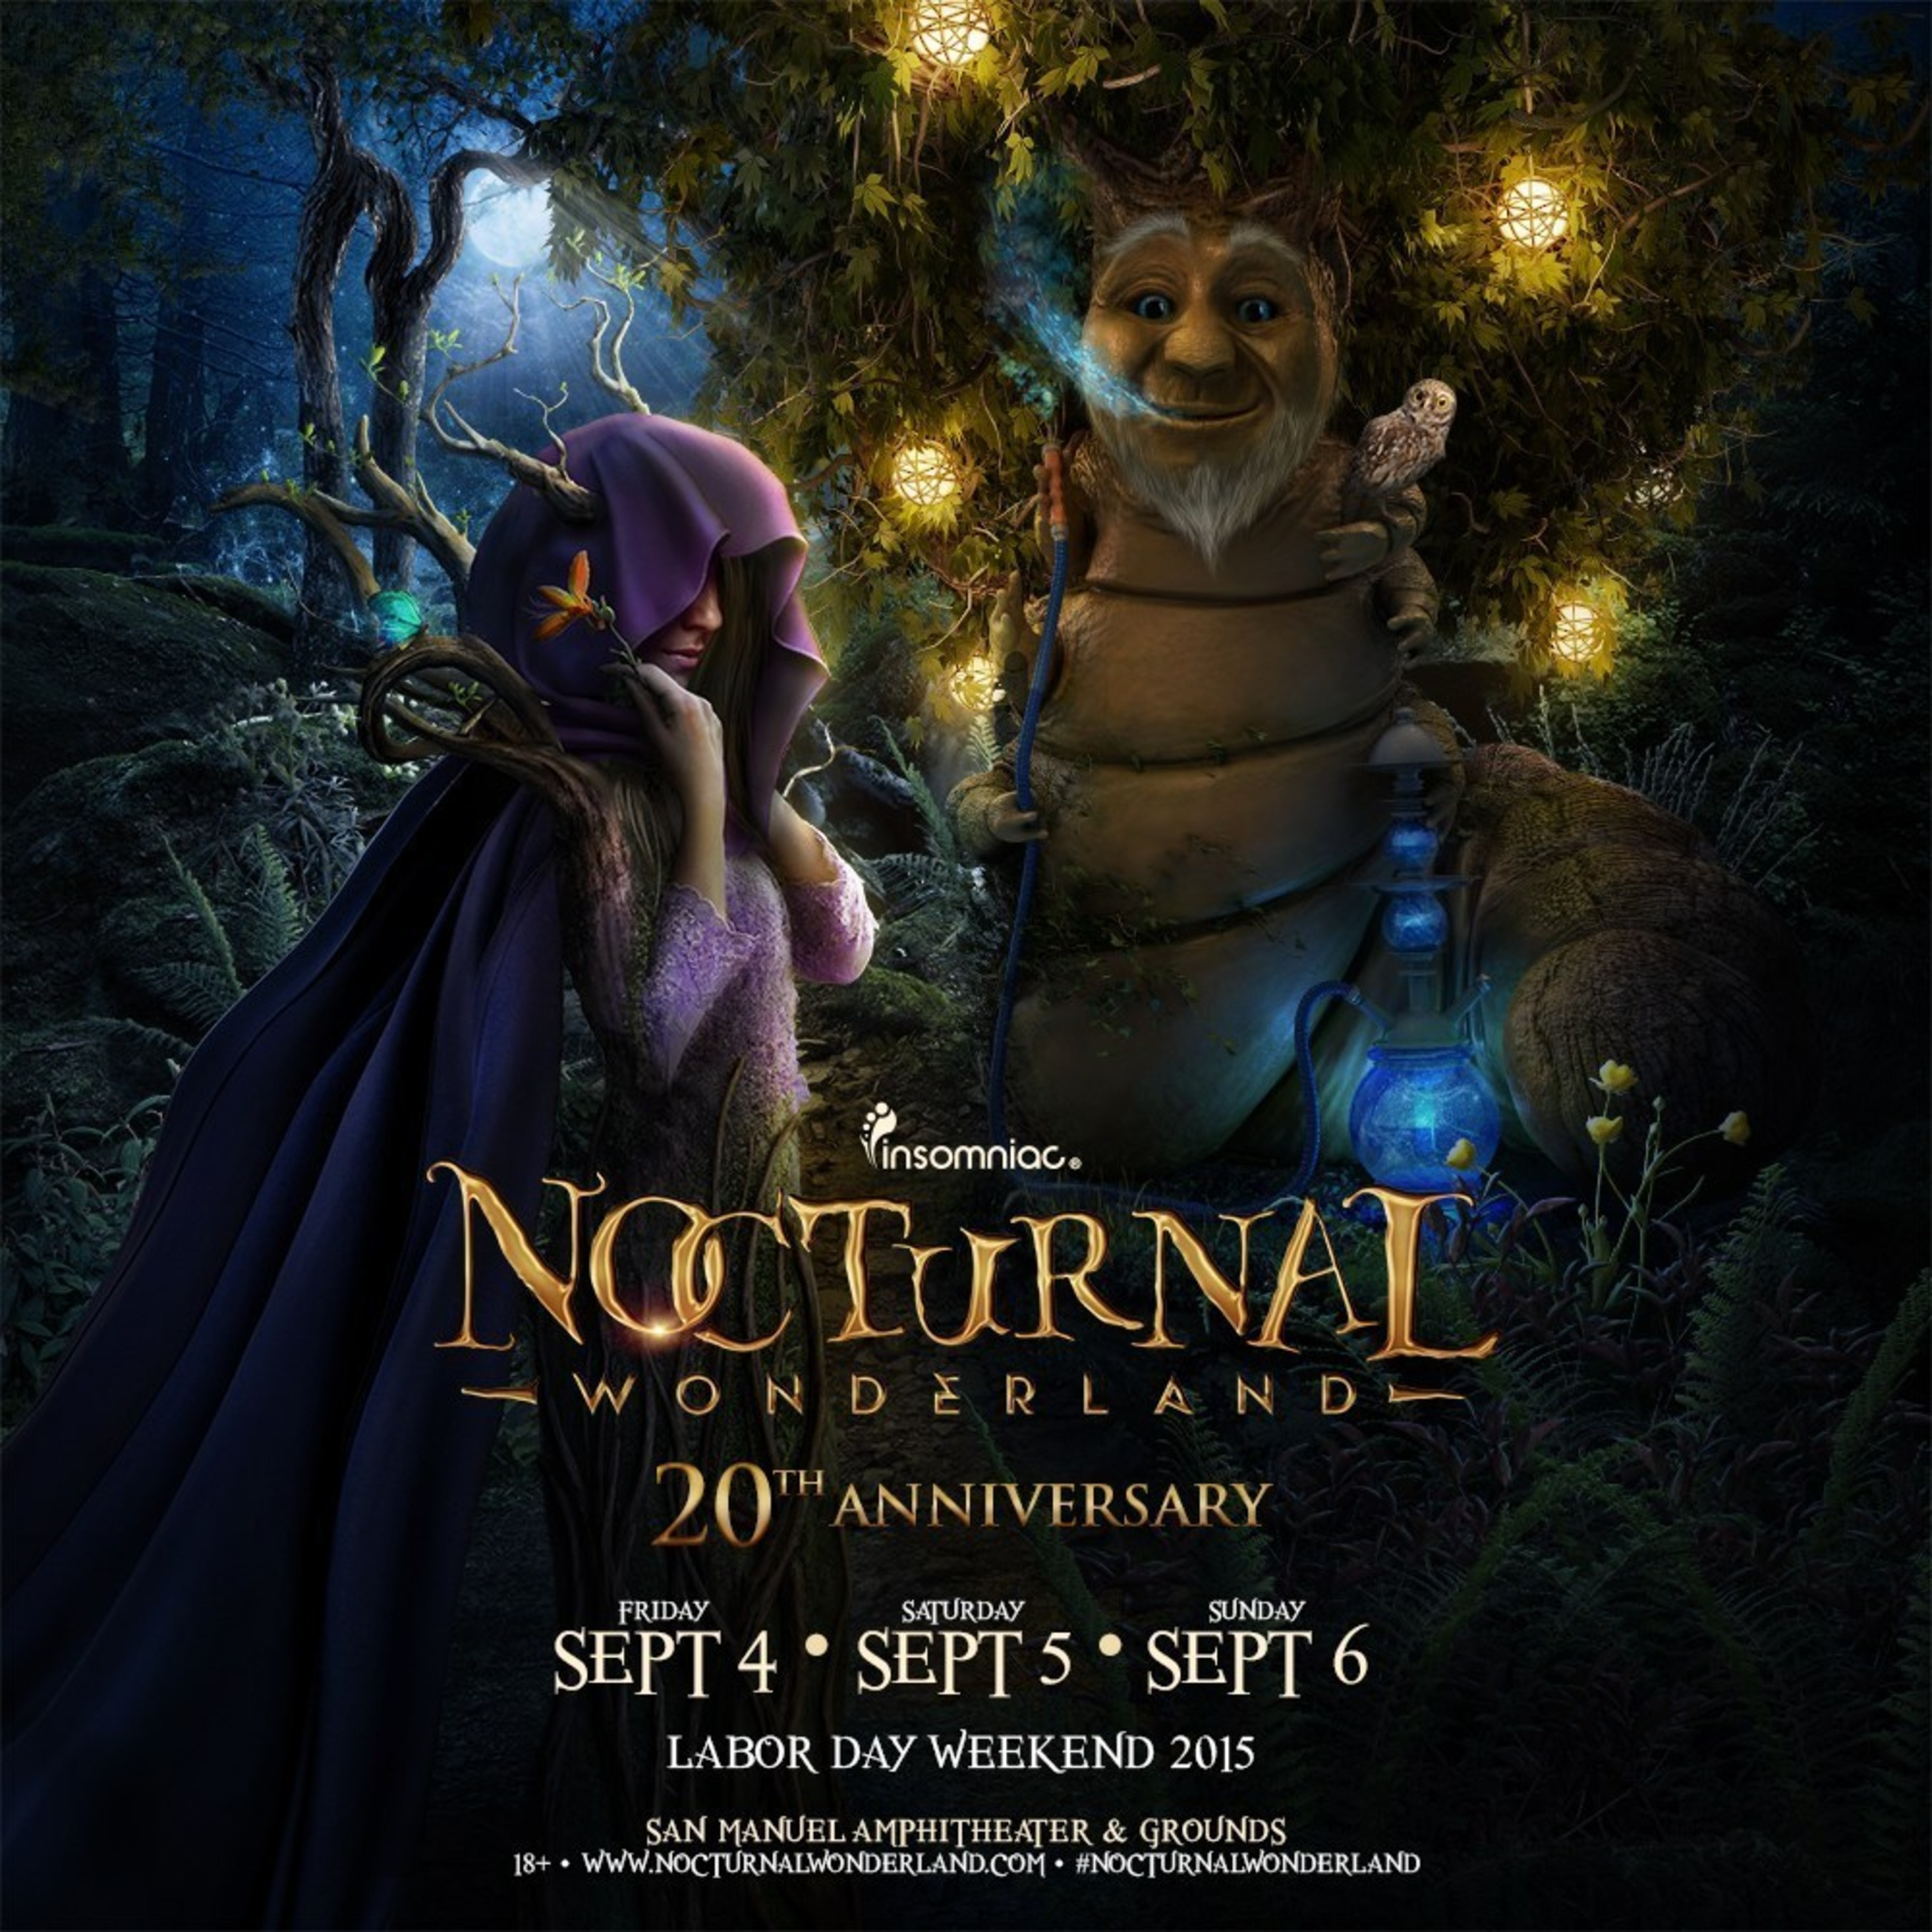 Insomniac's Nocturnal Wonderland Festival Expands To Three Days For 20th Anniversary